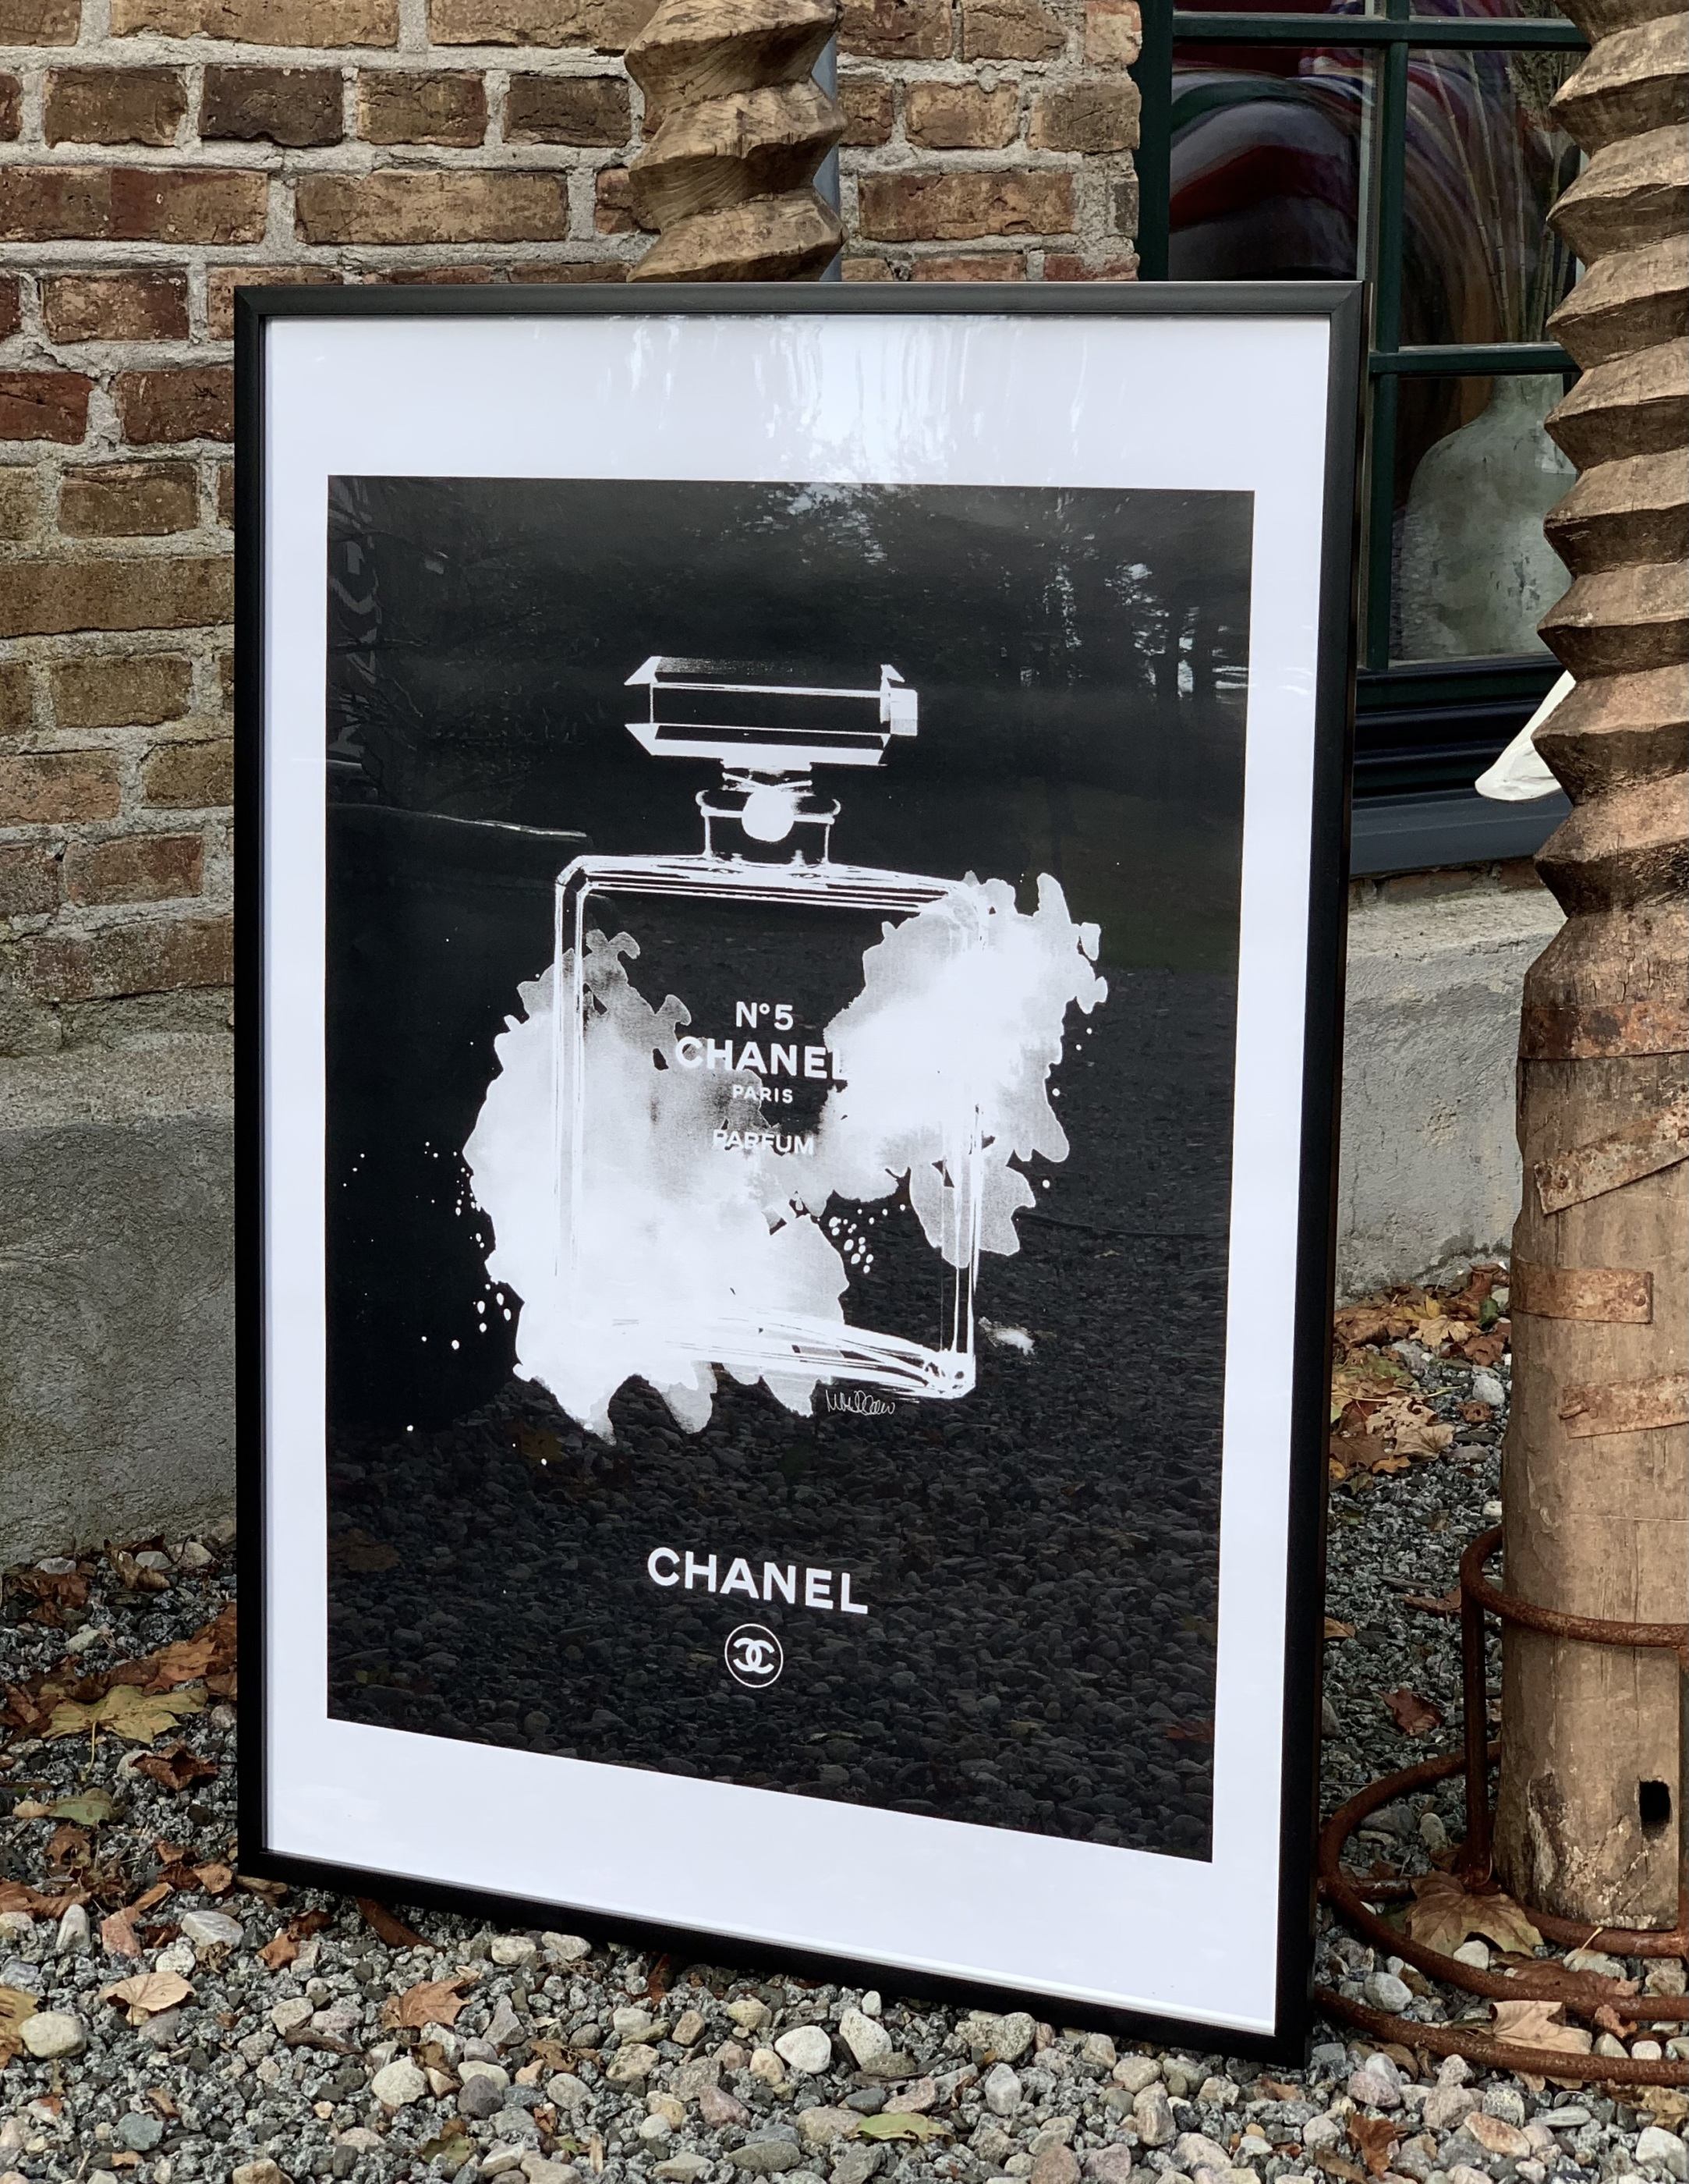 Chanel Bottle Invert IMAGE BY ME